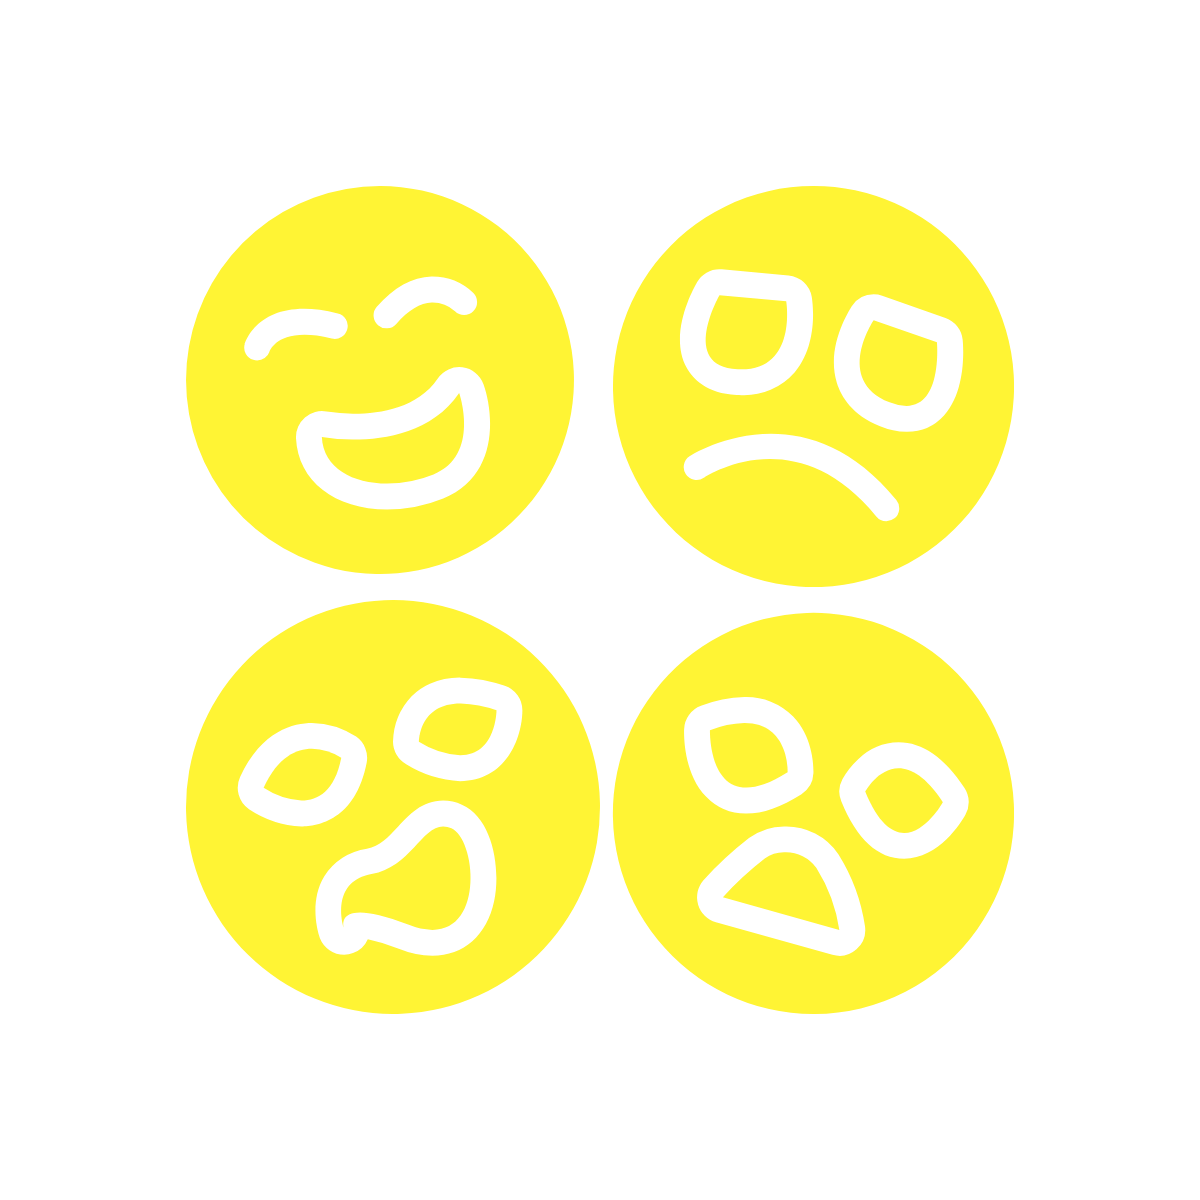 Faces showing a range of emotions.